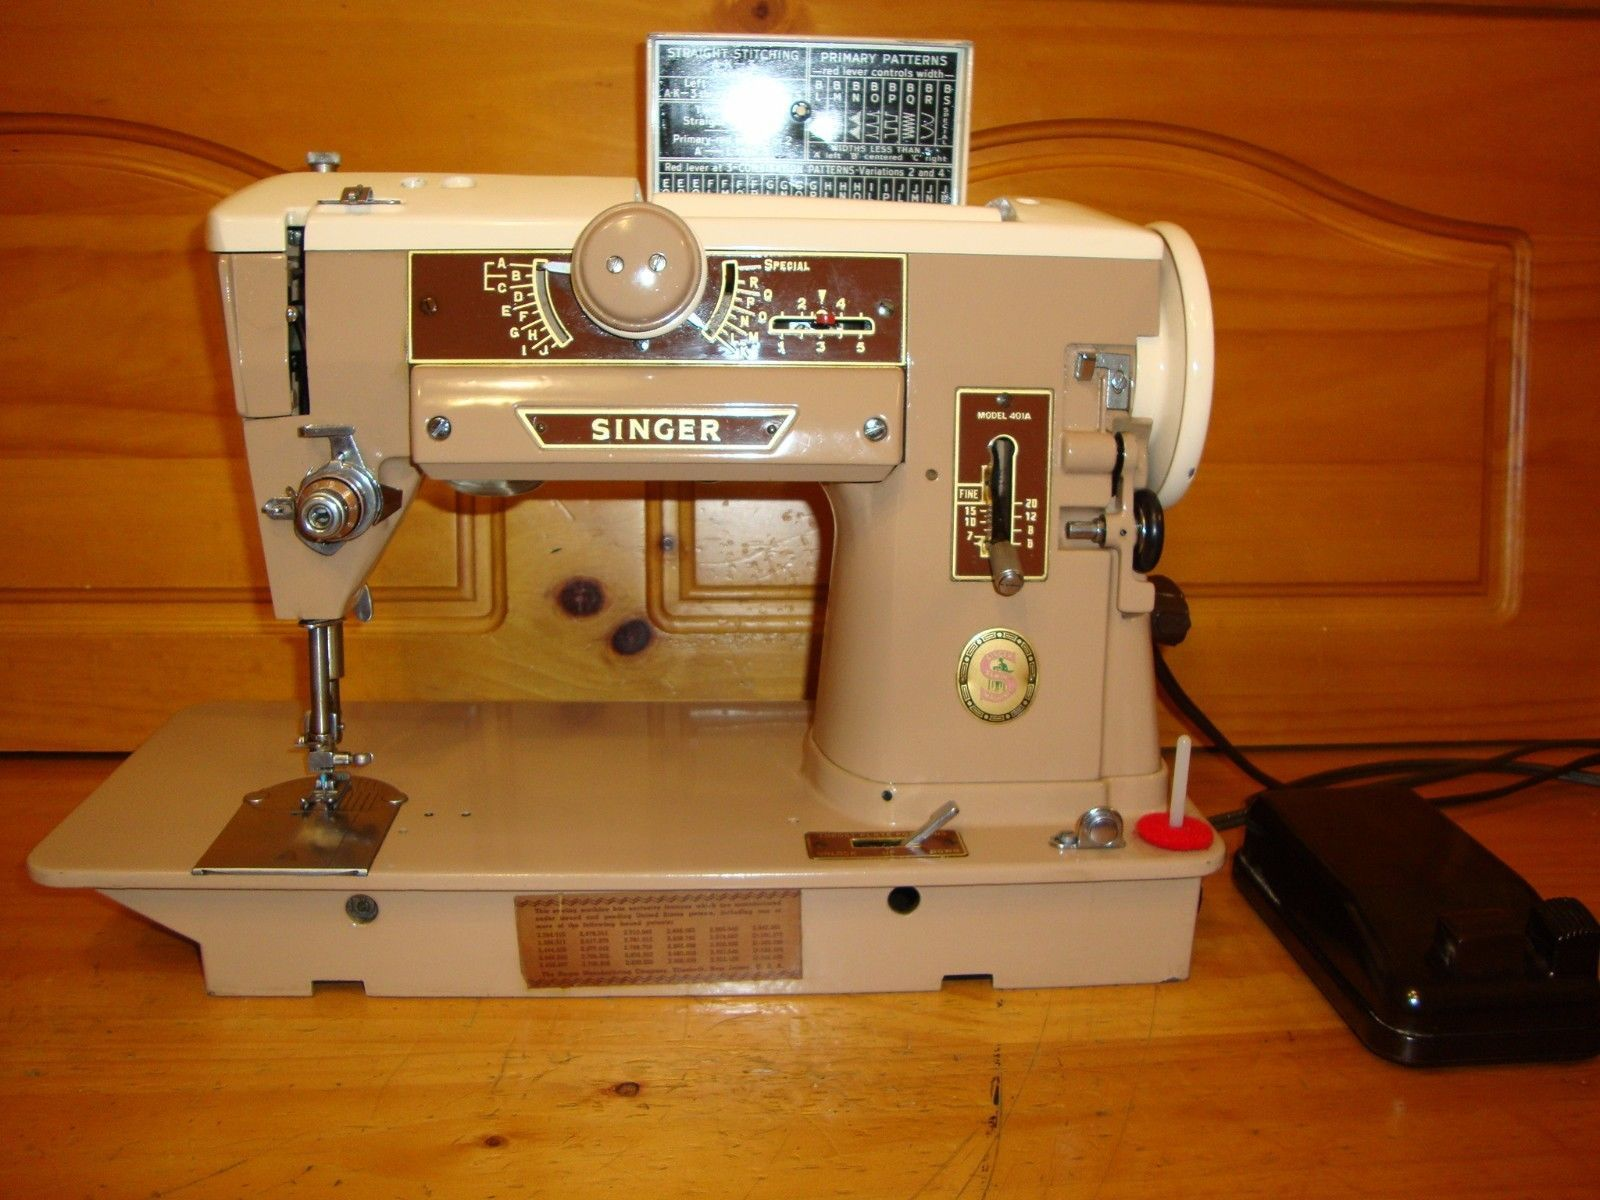 Innotek Iuc 5100 In Ground Electronic Fence Singer Sewing Machine Sewing Machine Singer Sewing